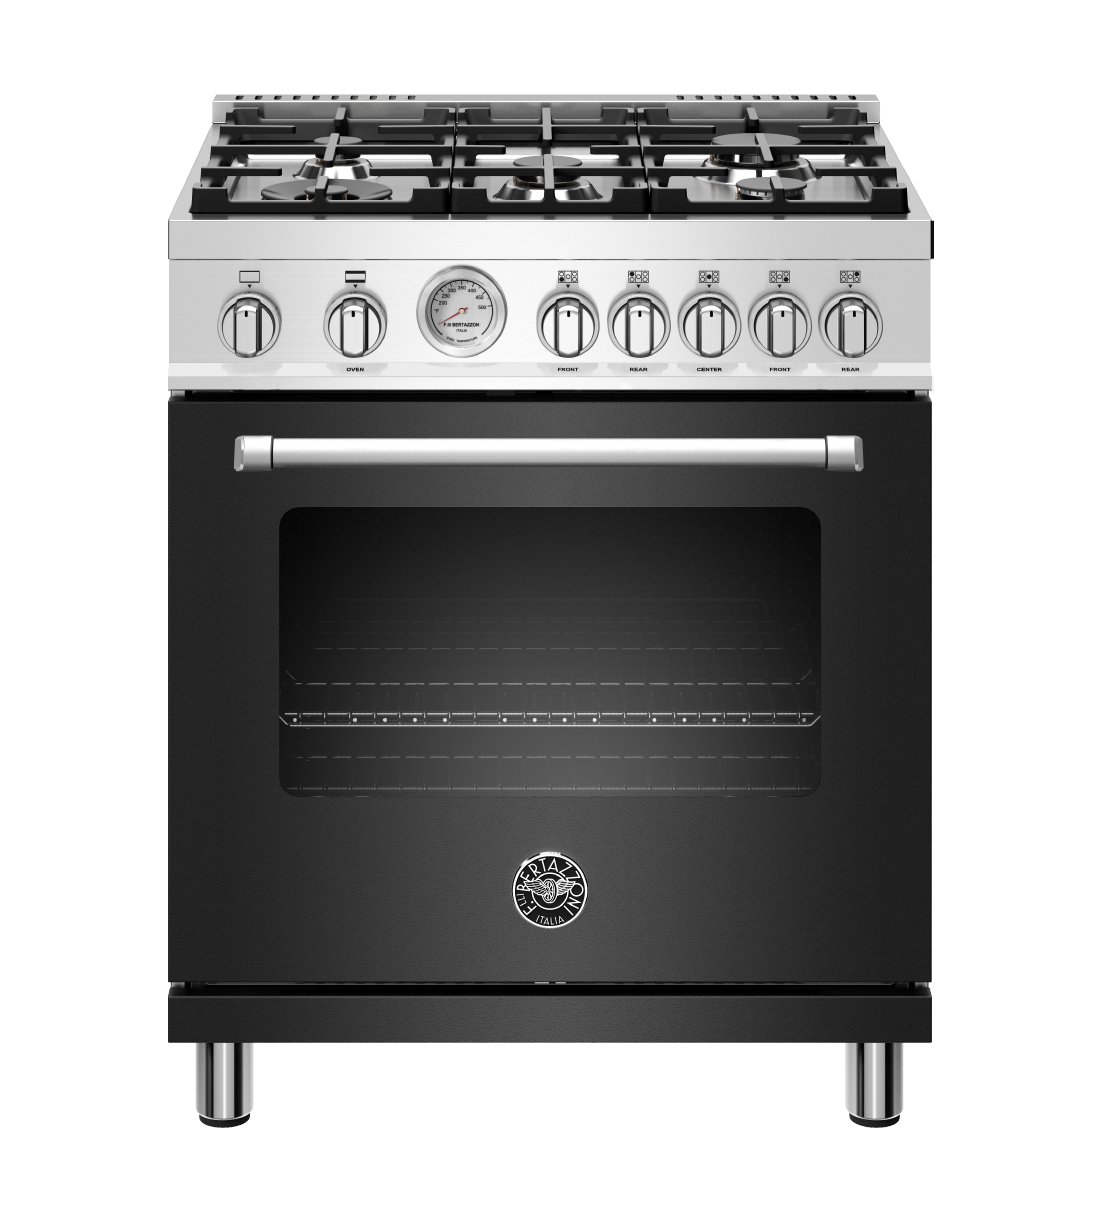 Bertazzoni Range 30inch in Stainless Steel color showcased by Corbeil Electro Store